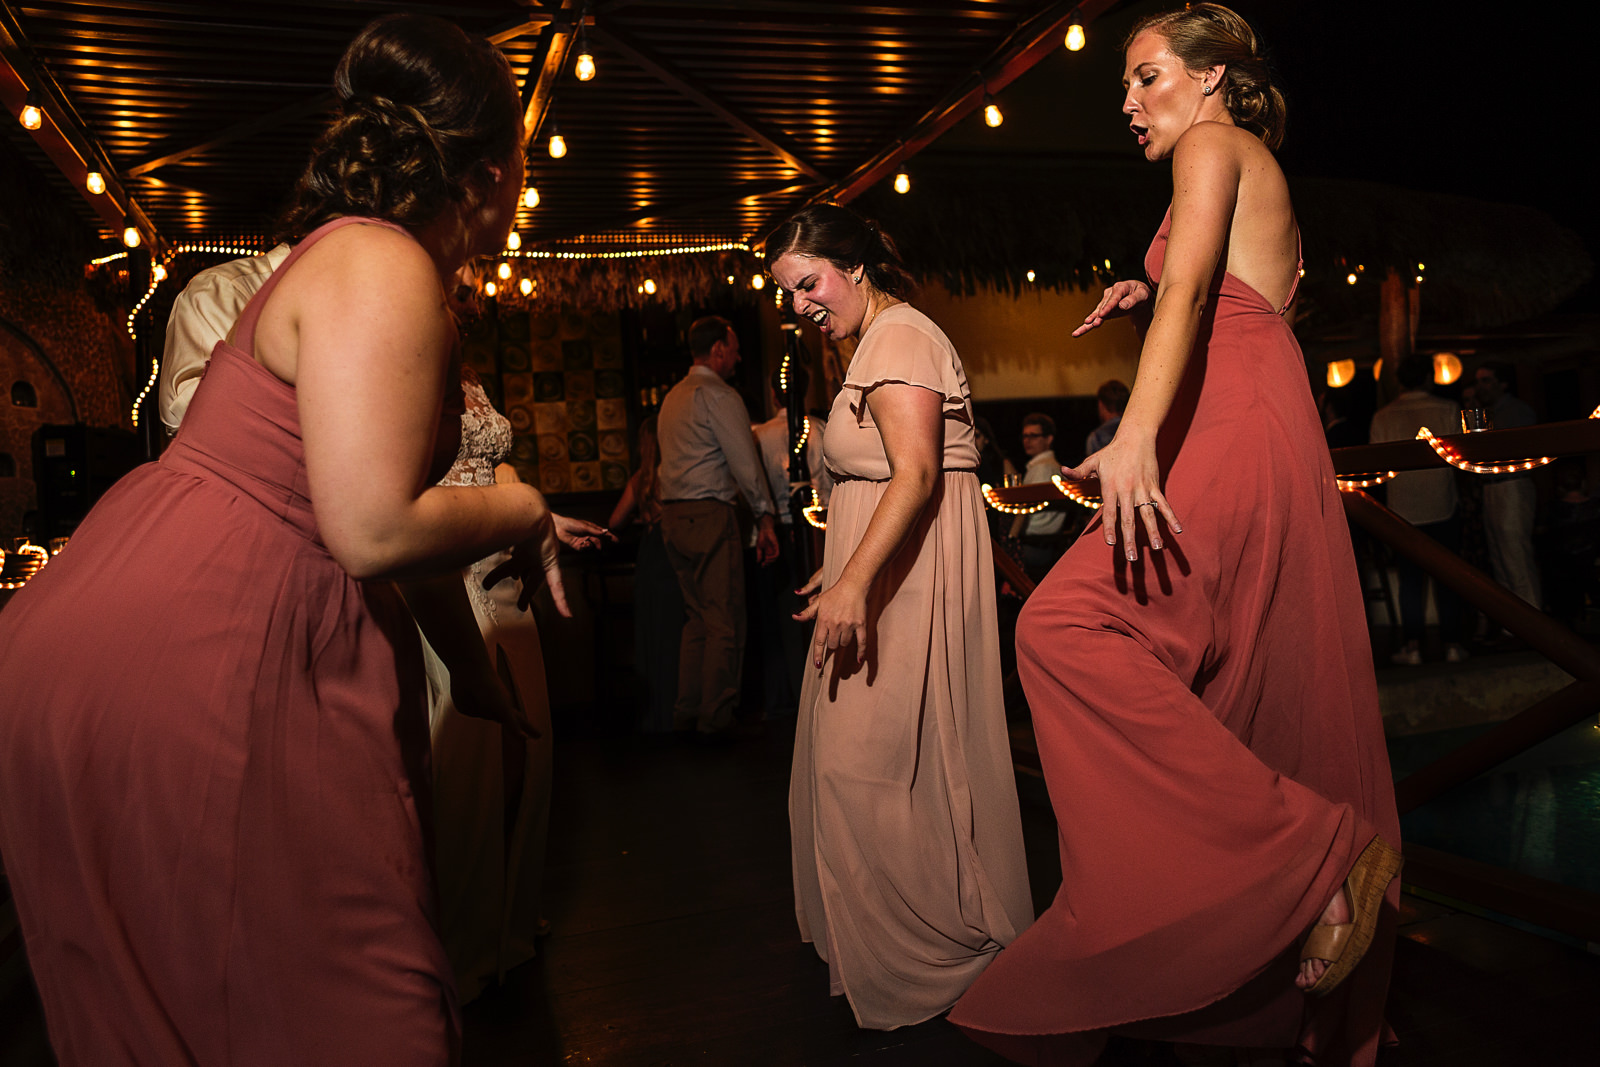 wedding-bridesmaids-party-dance-lights-fun-loving-hotel-playa-fiesta.jpg